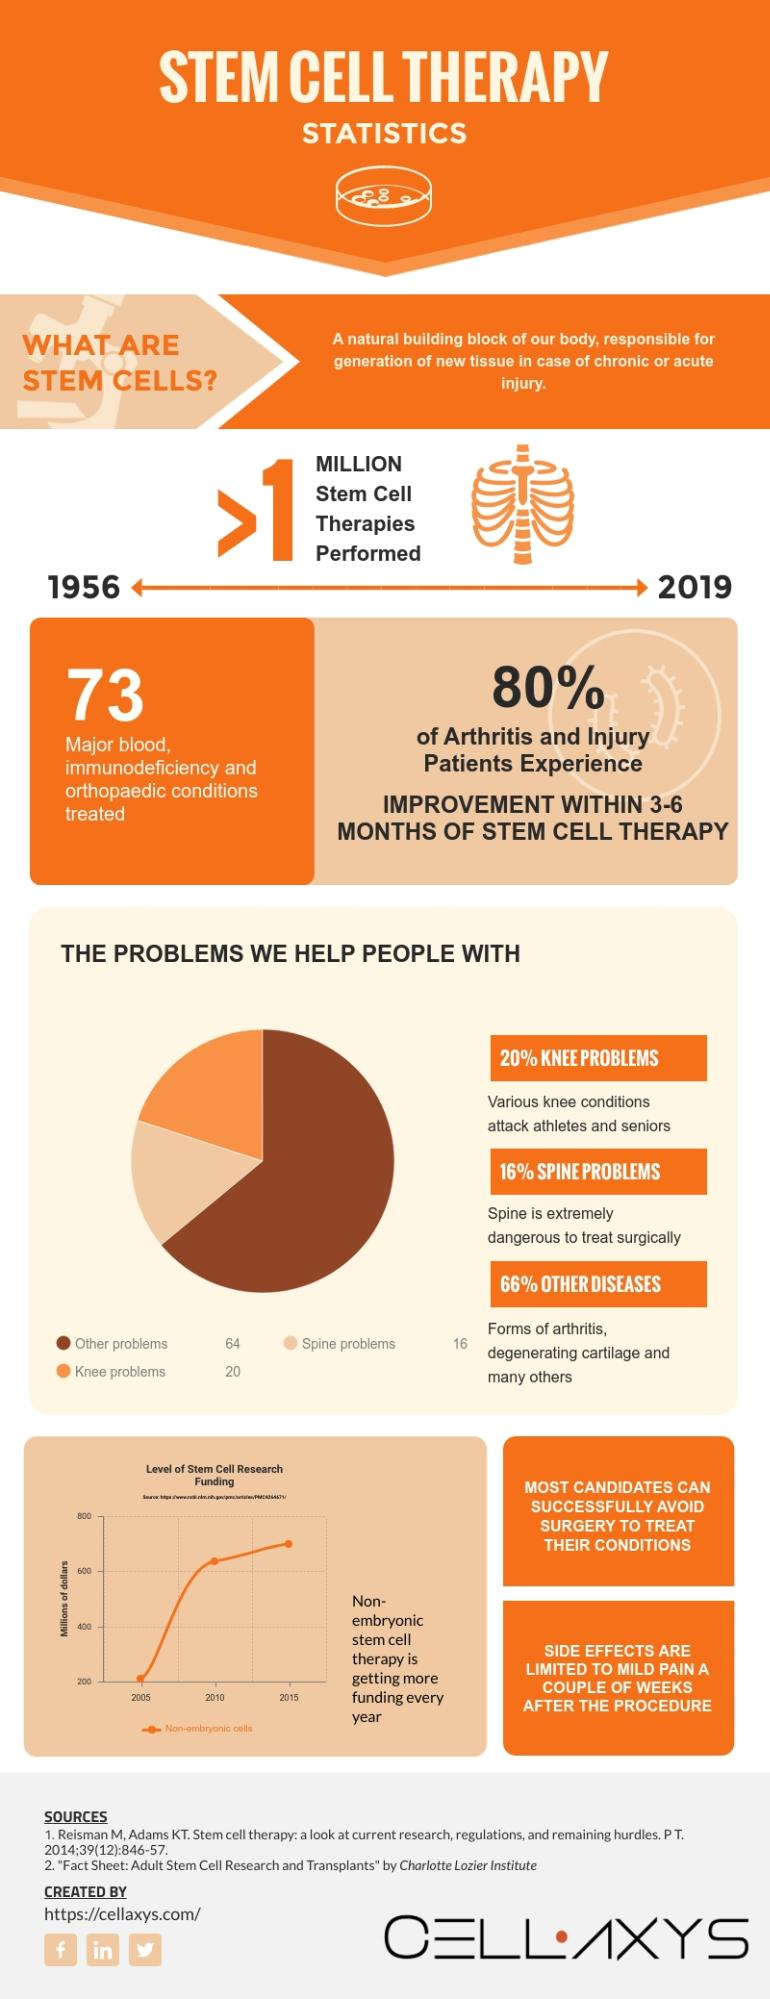 Stem Cell Therapy Statistics